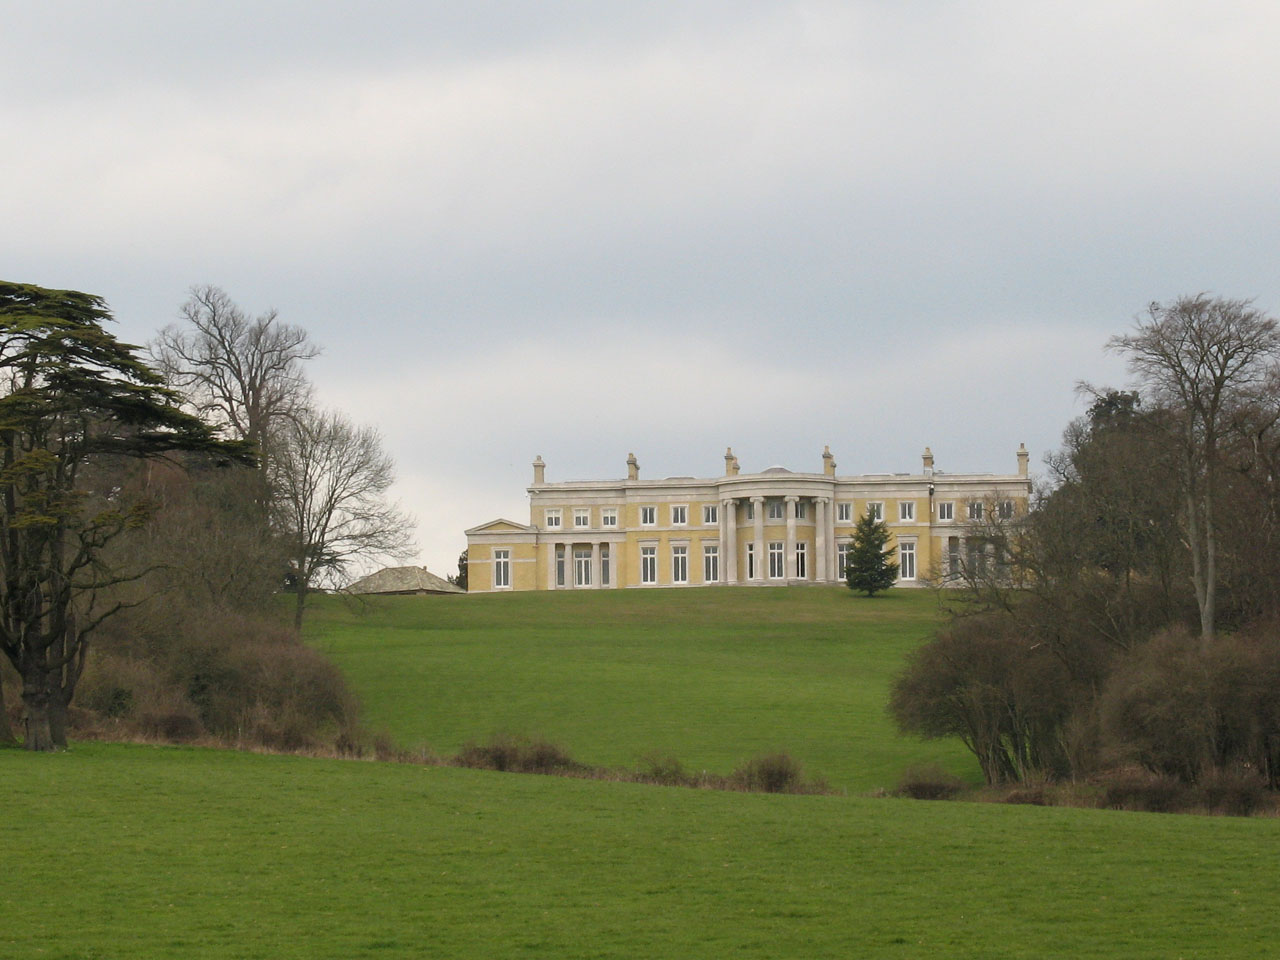 Holwood House